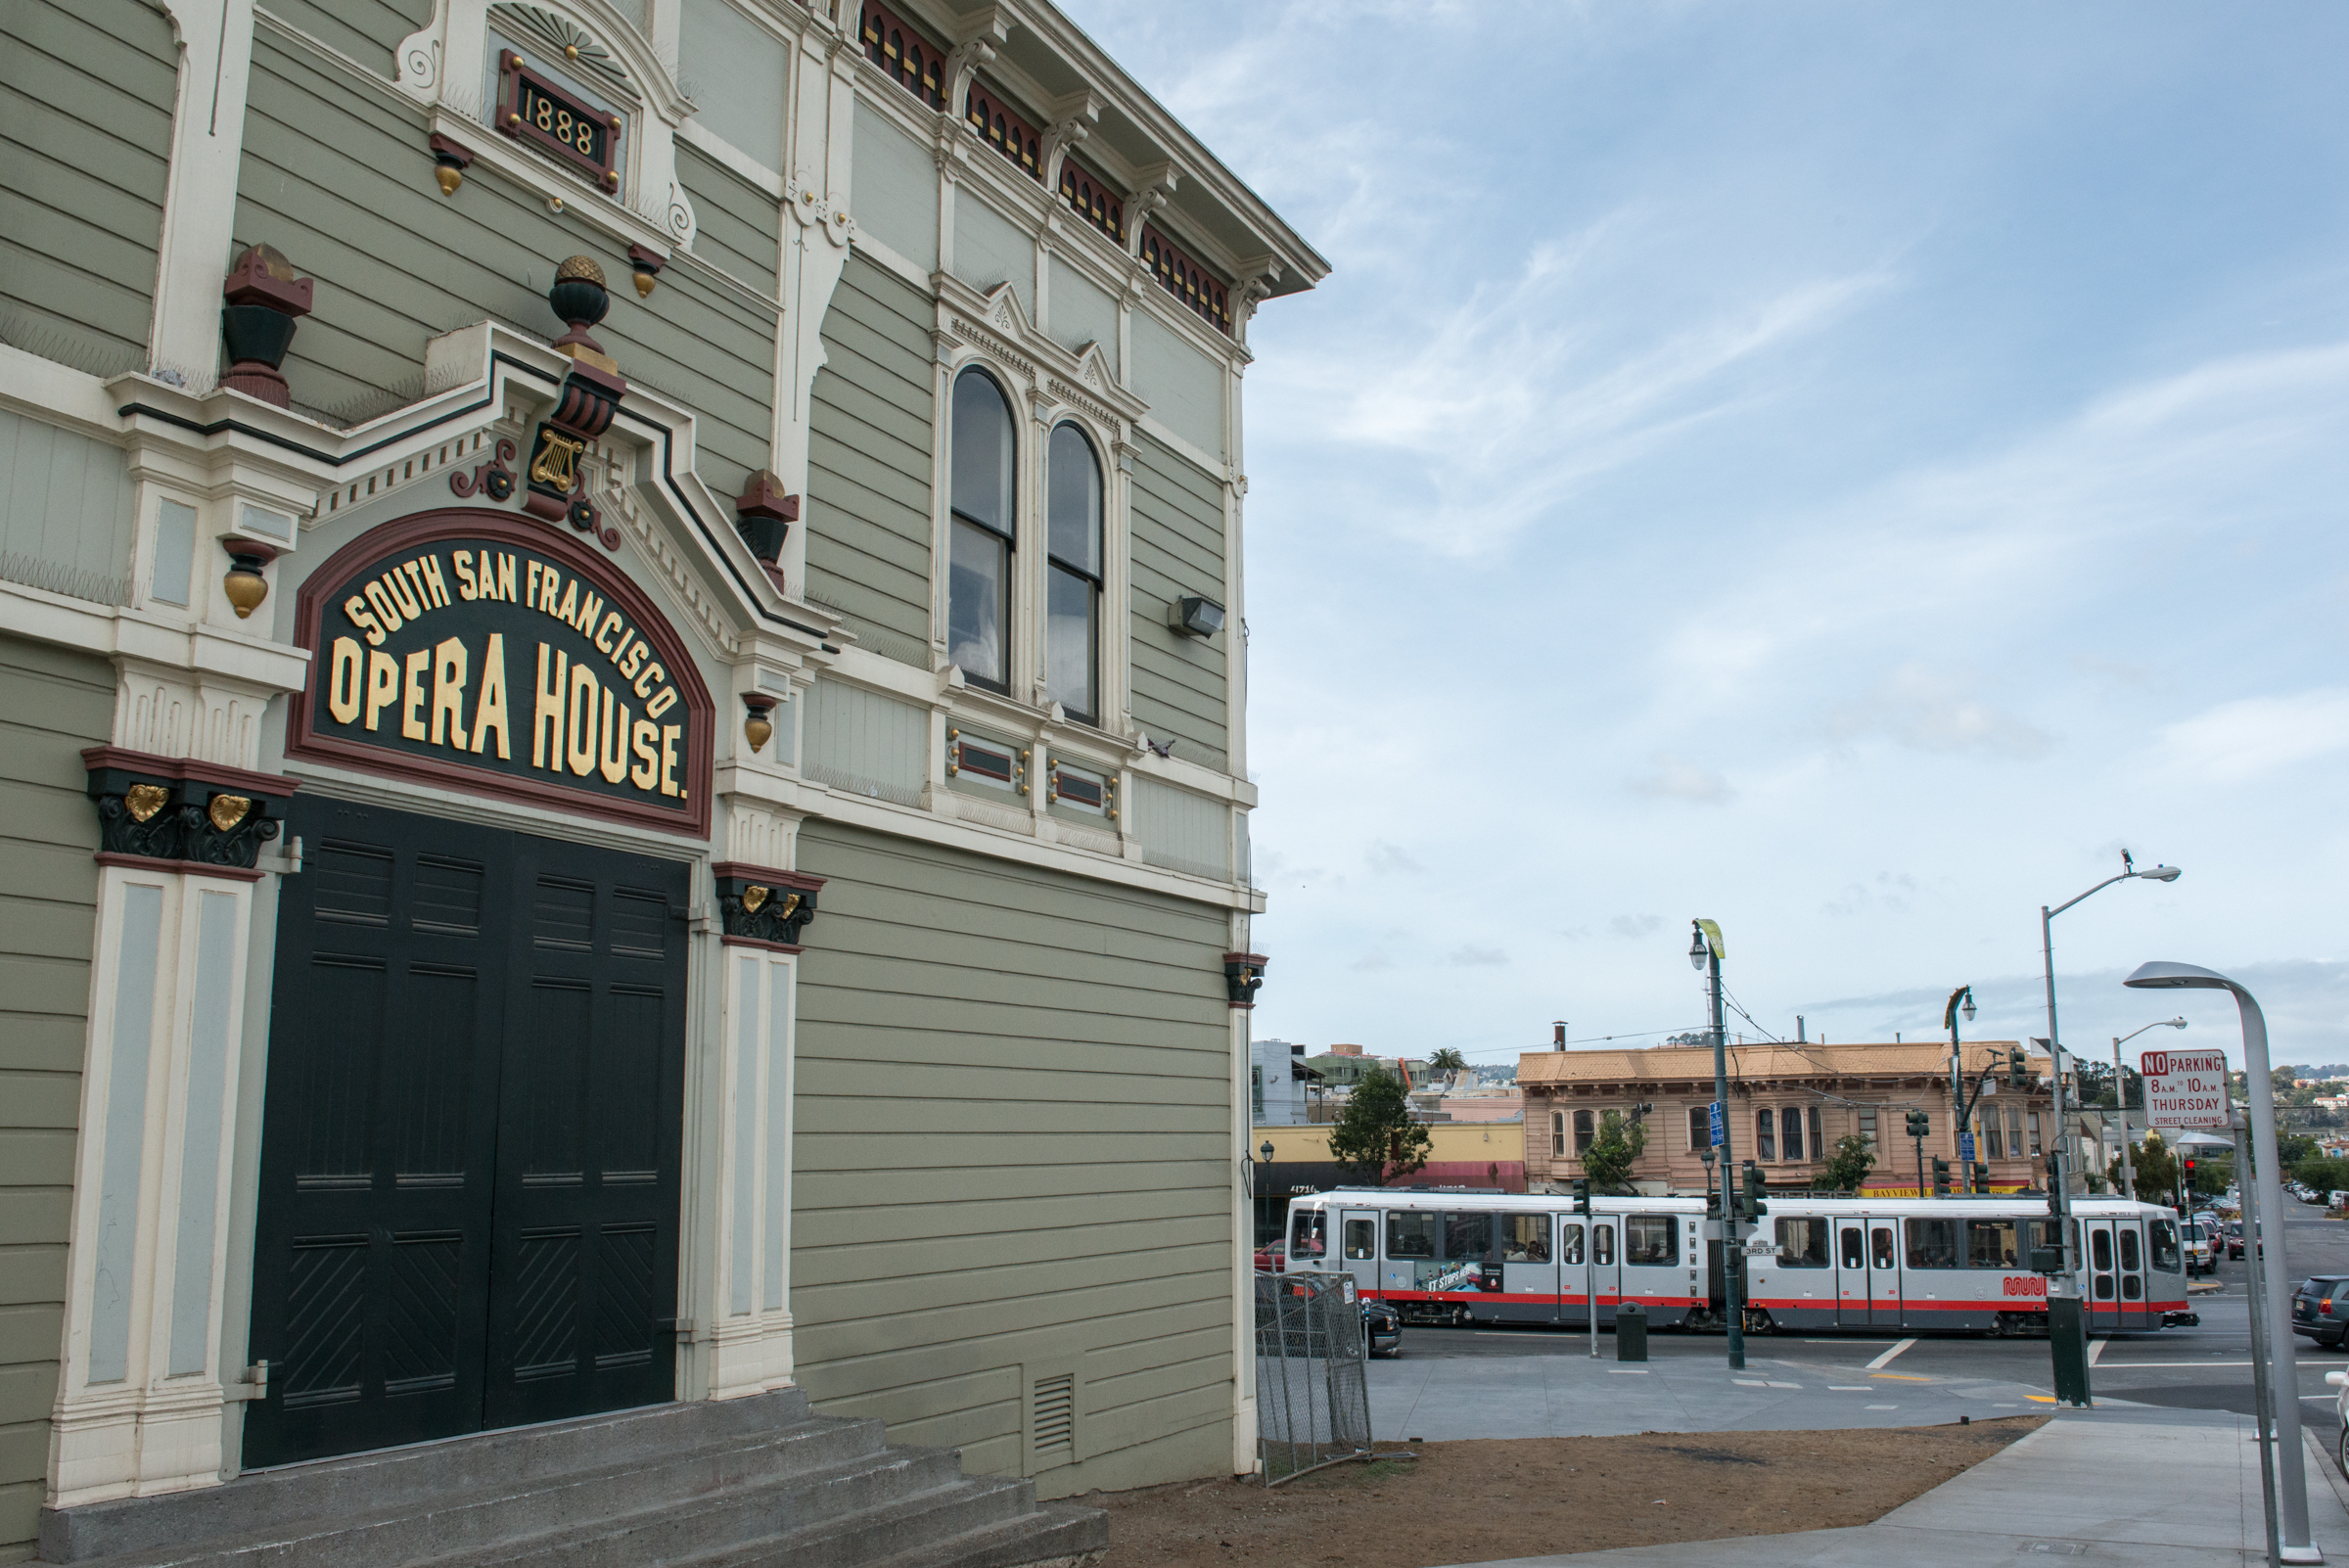 House hunters san francisco bay - Facade Of The Bayview Opera House With A Muni T Third Light Rail Vehicle Running In